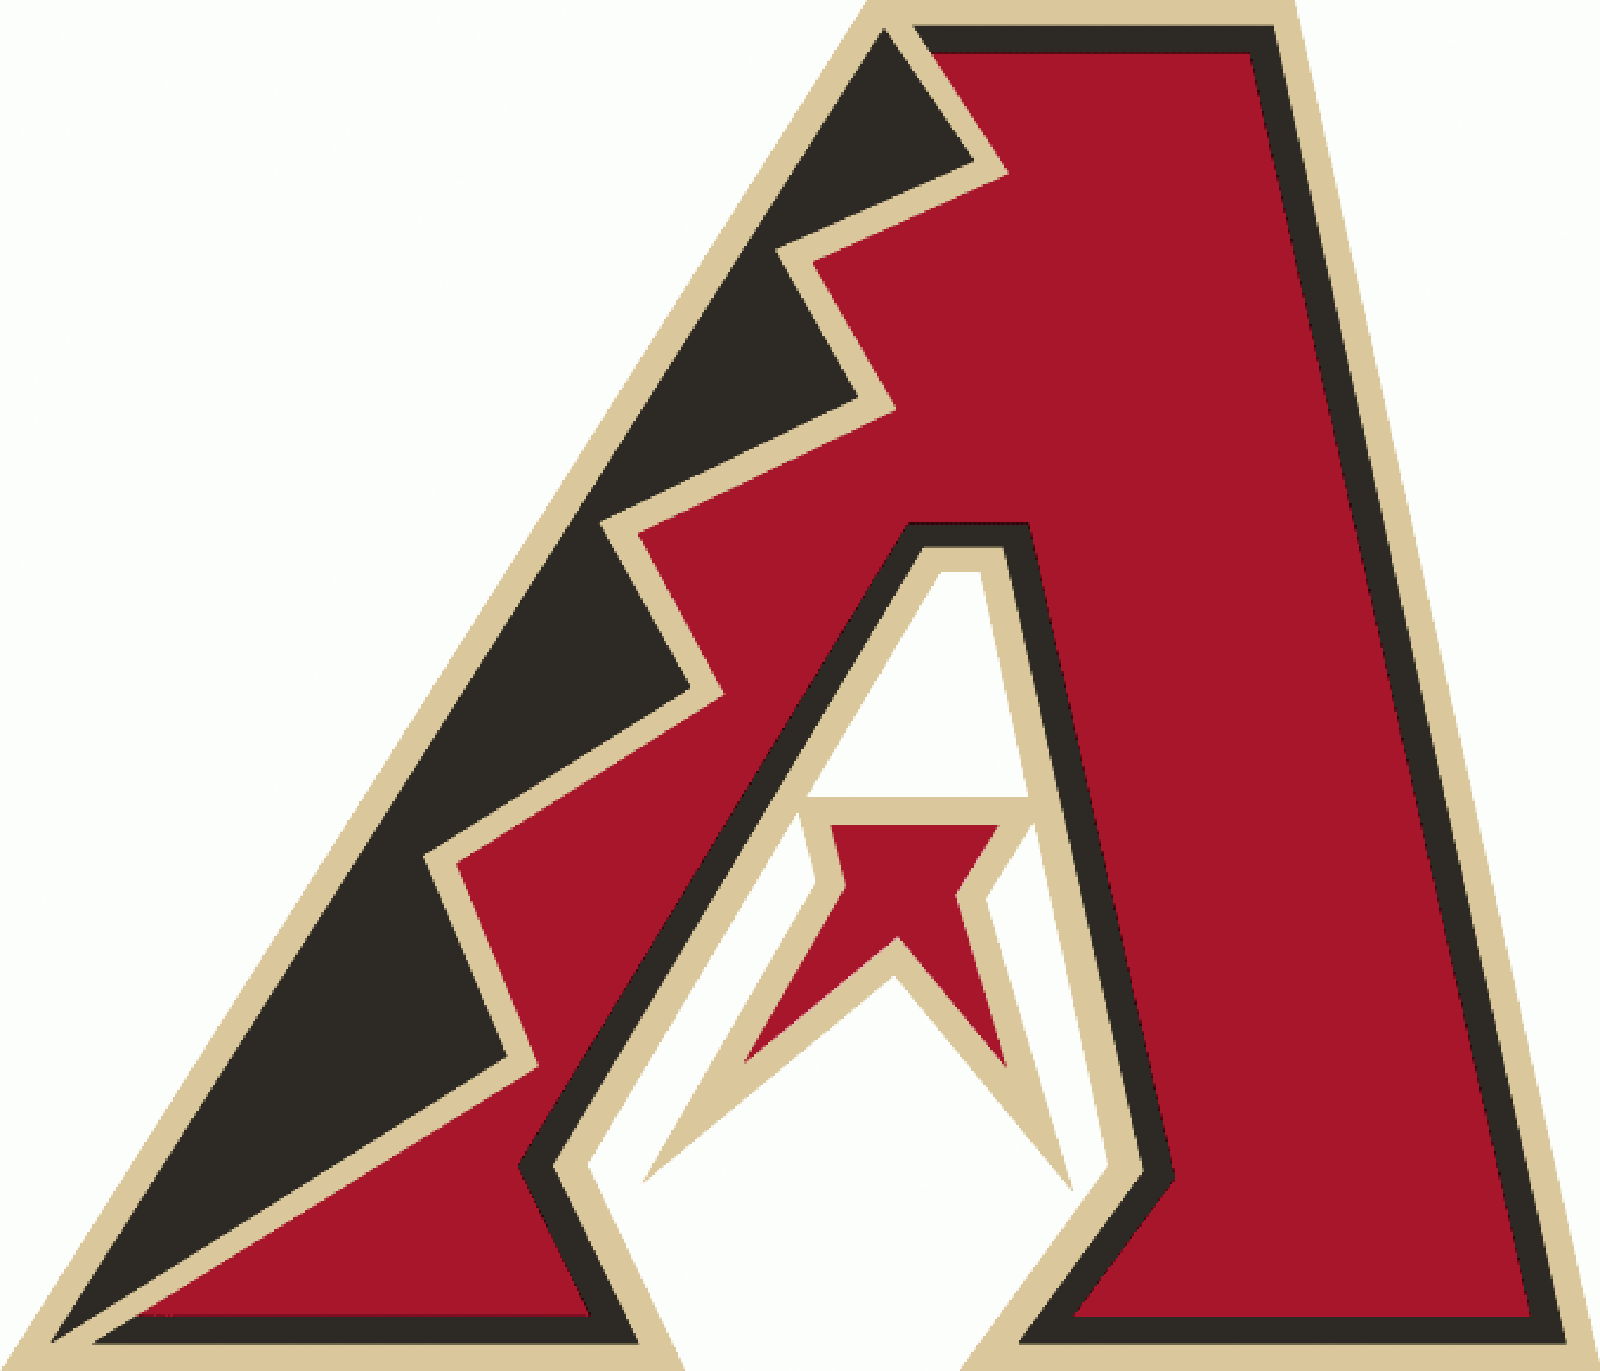 dbacks diamondbacks logo